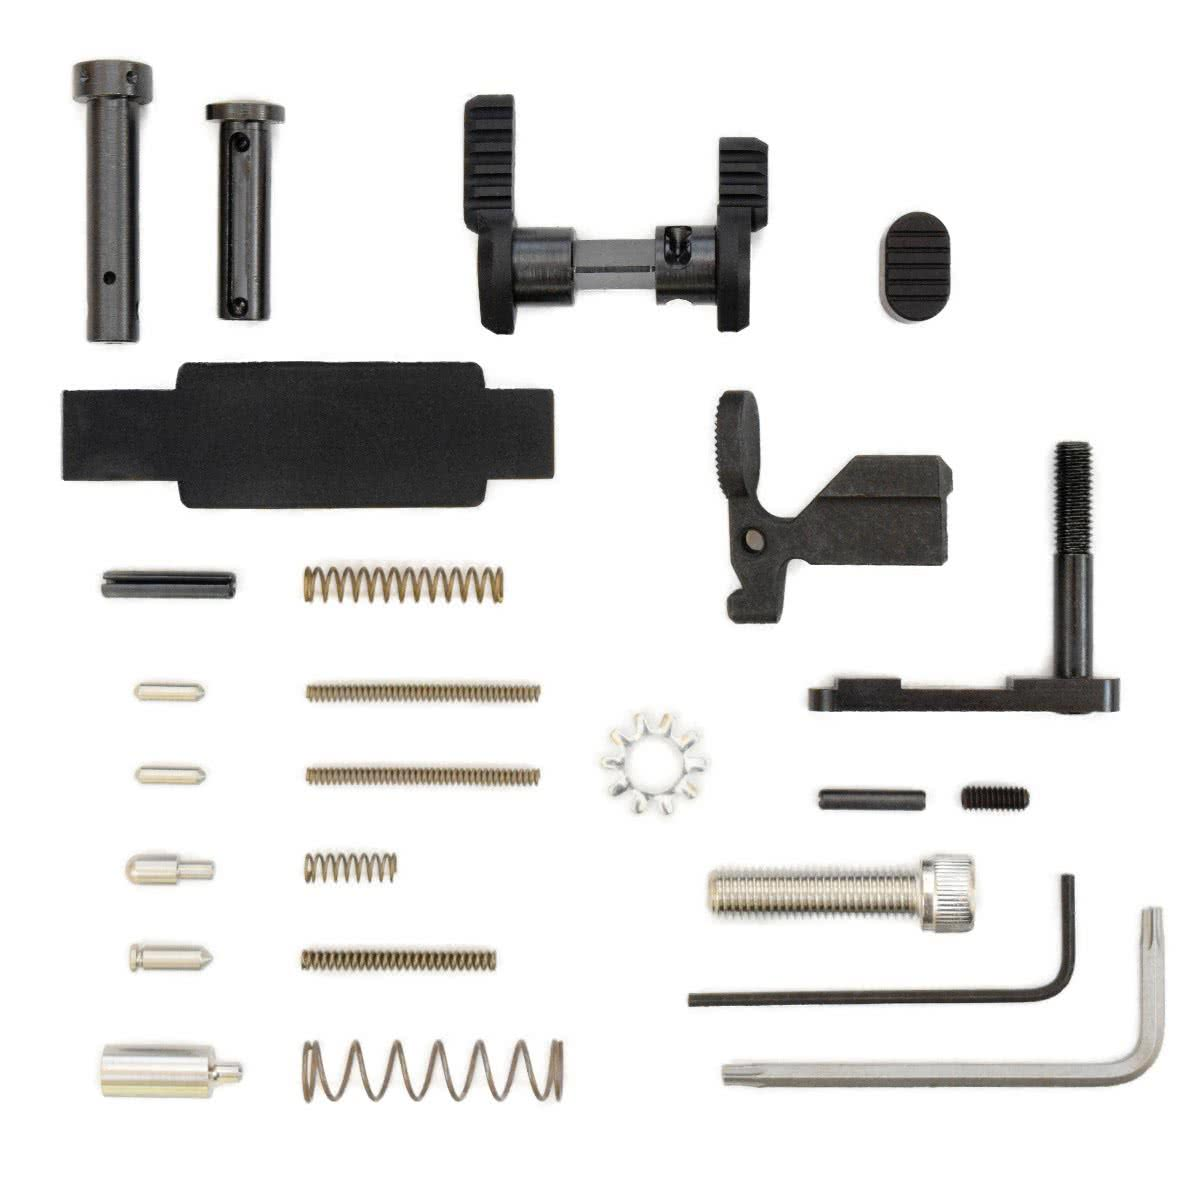 Lower Parts Kit less Trigger Group & Grip for .223/5.56